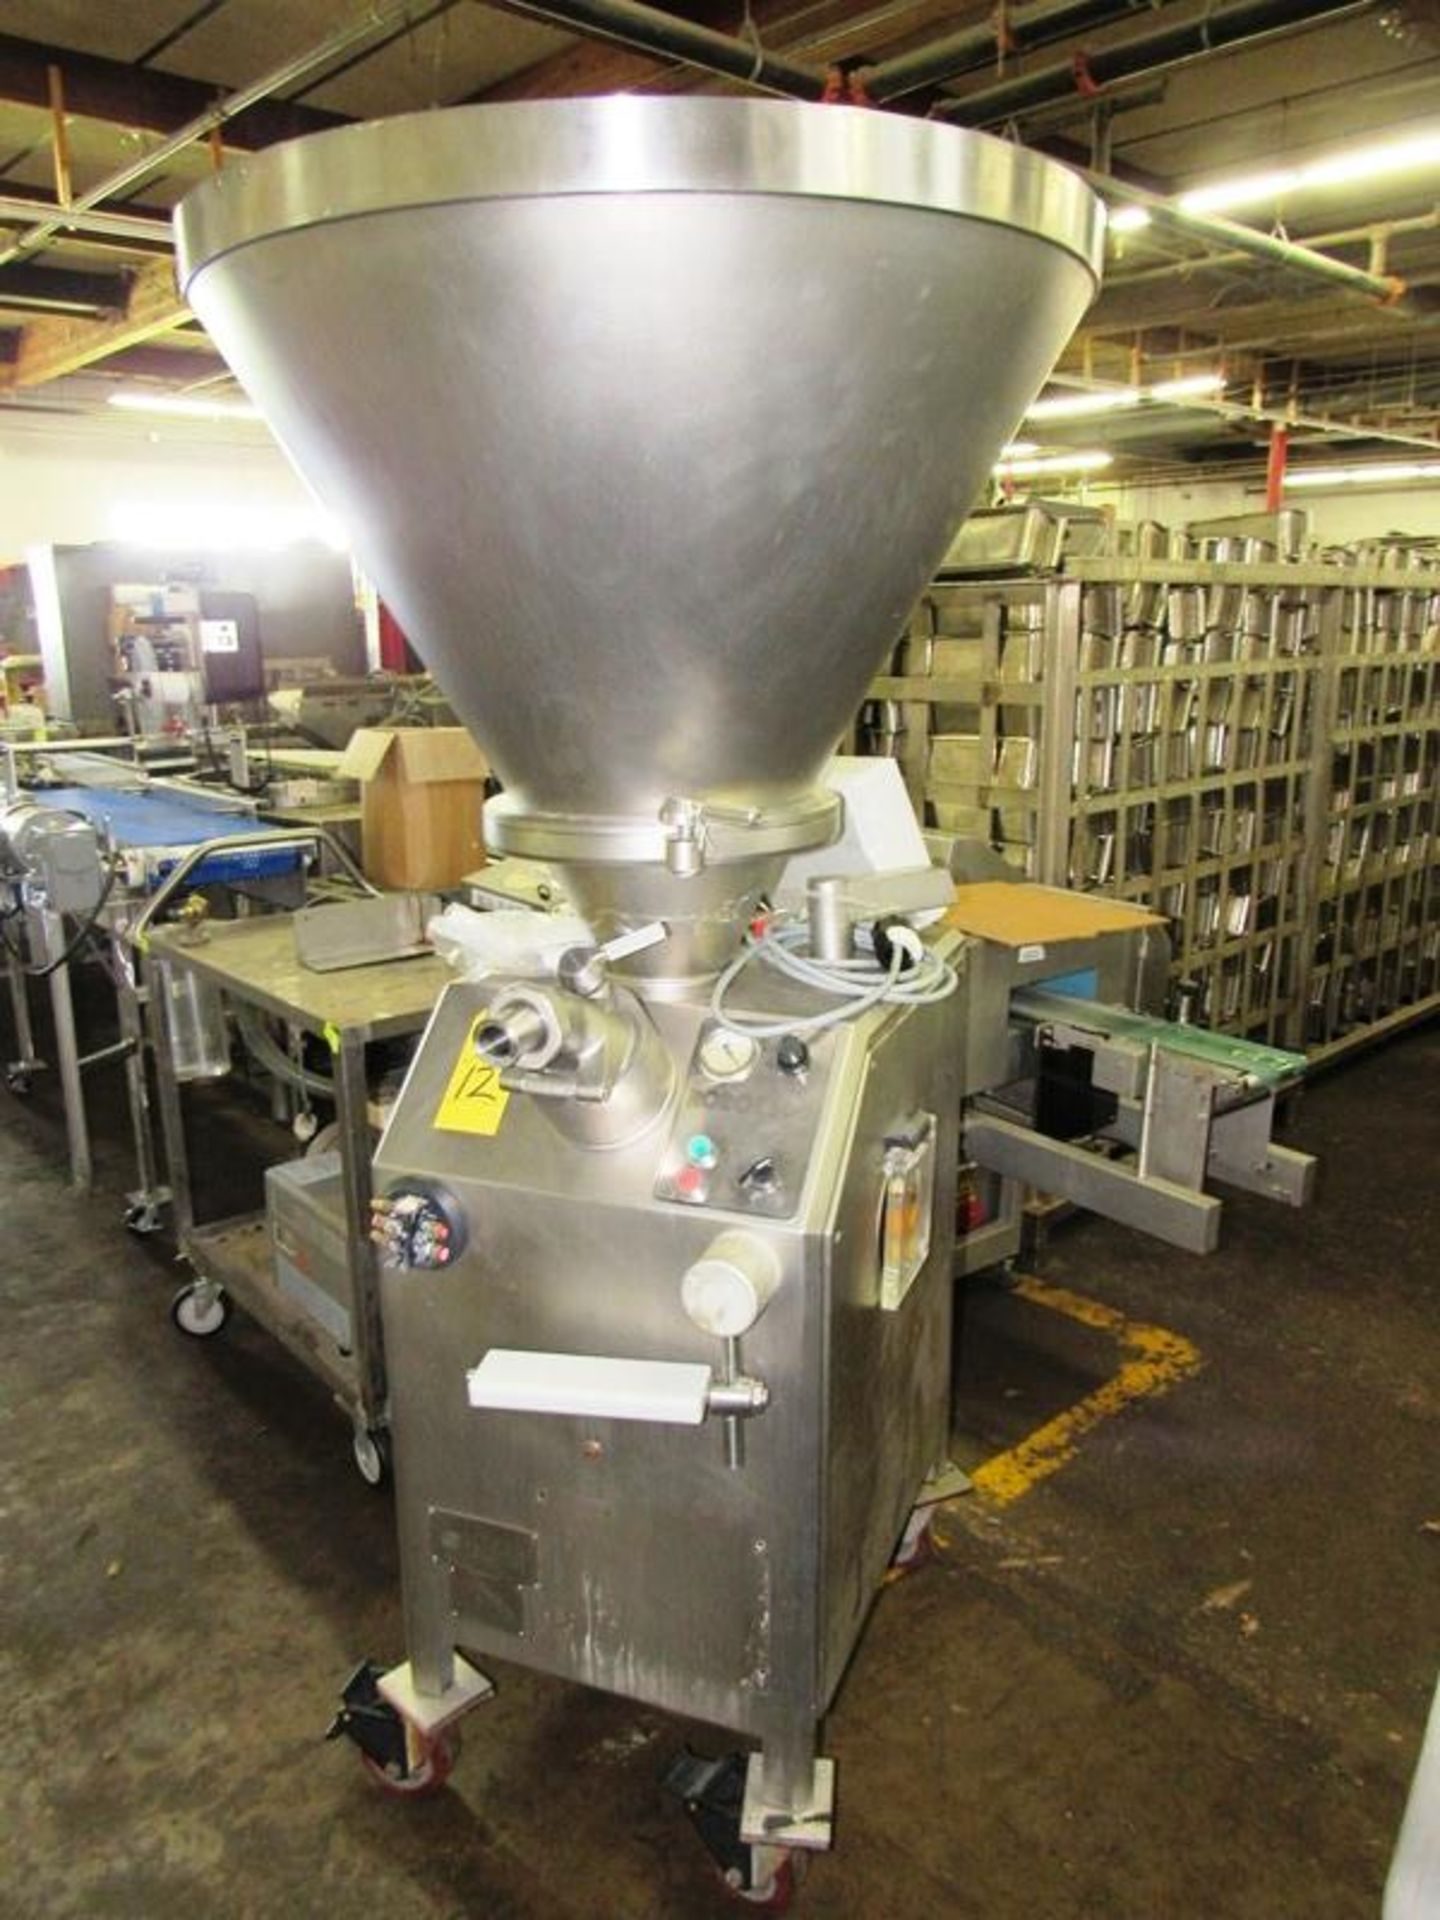 Lot 12 - Vemag Mdl. Robot 500 Continuous Stuffer, PC878 controls, Ser. #1284301, 220 volts